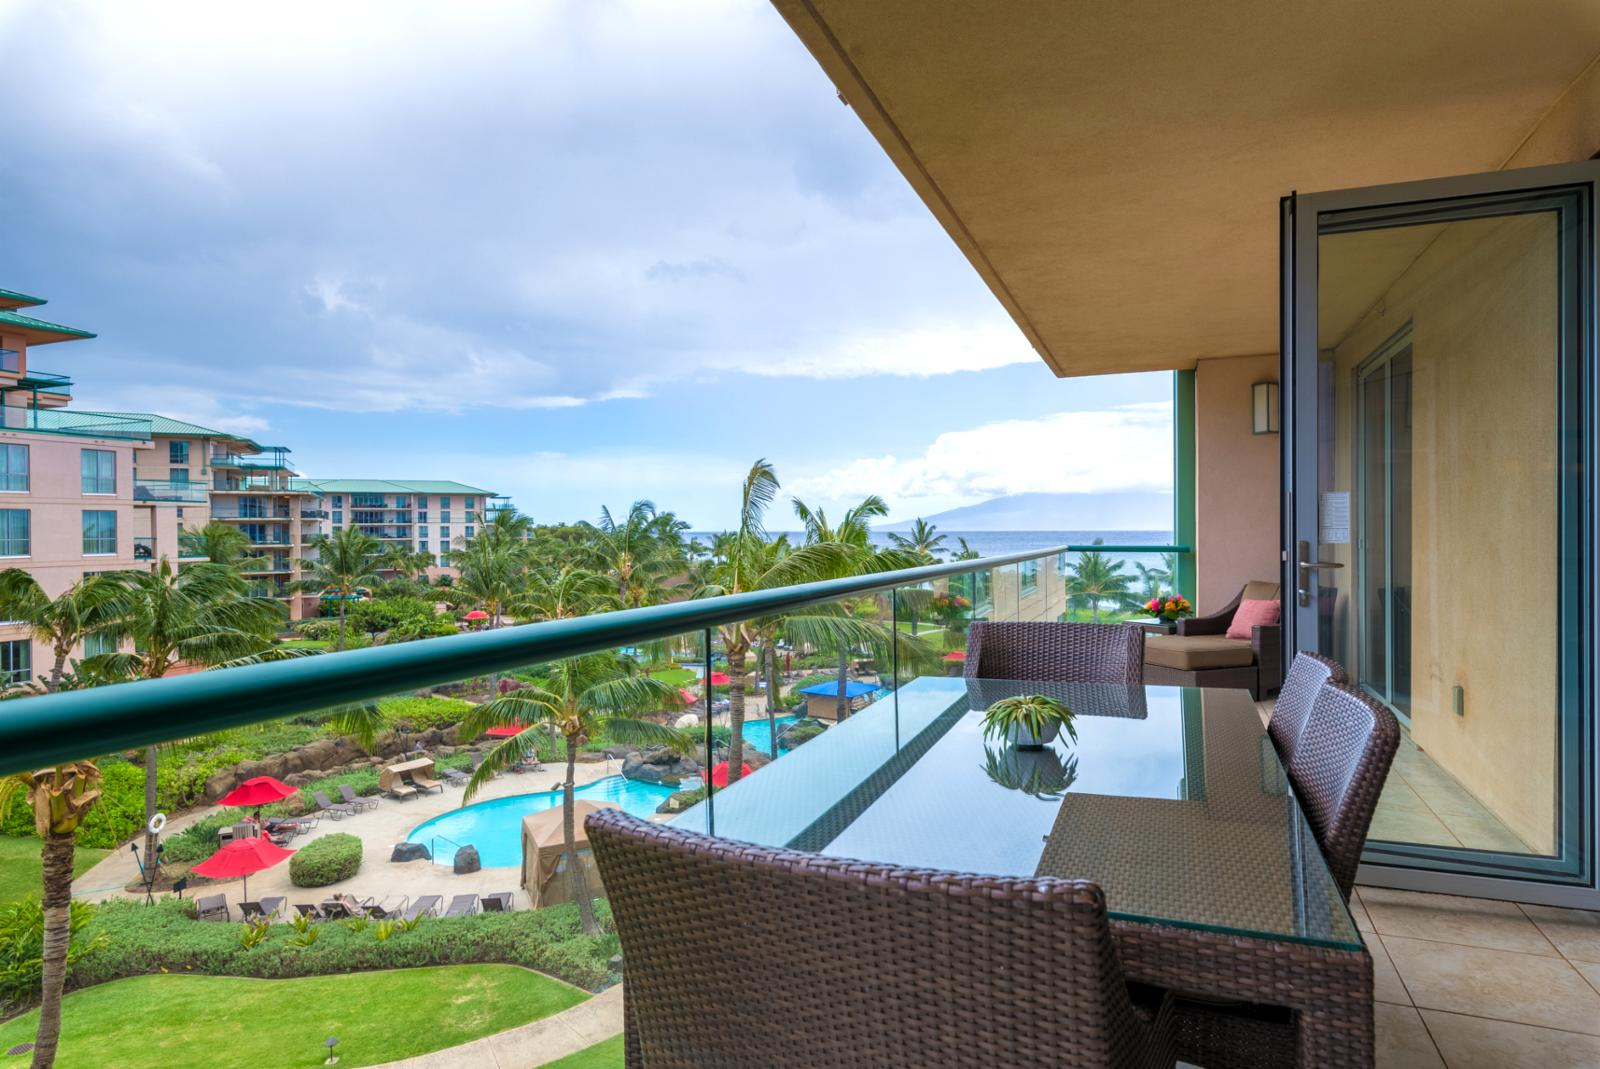 LARGE expansive balcony with ocean views!